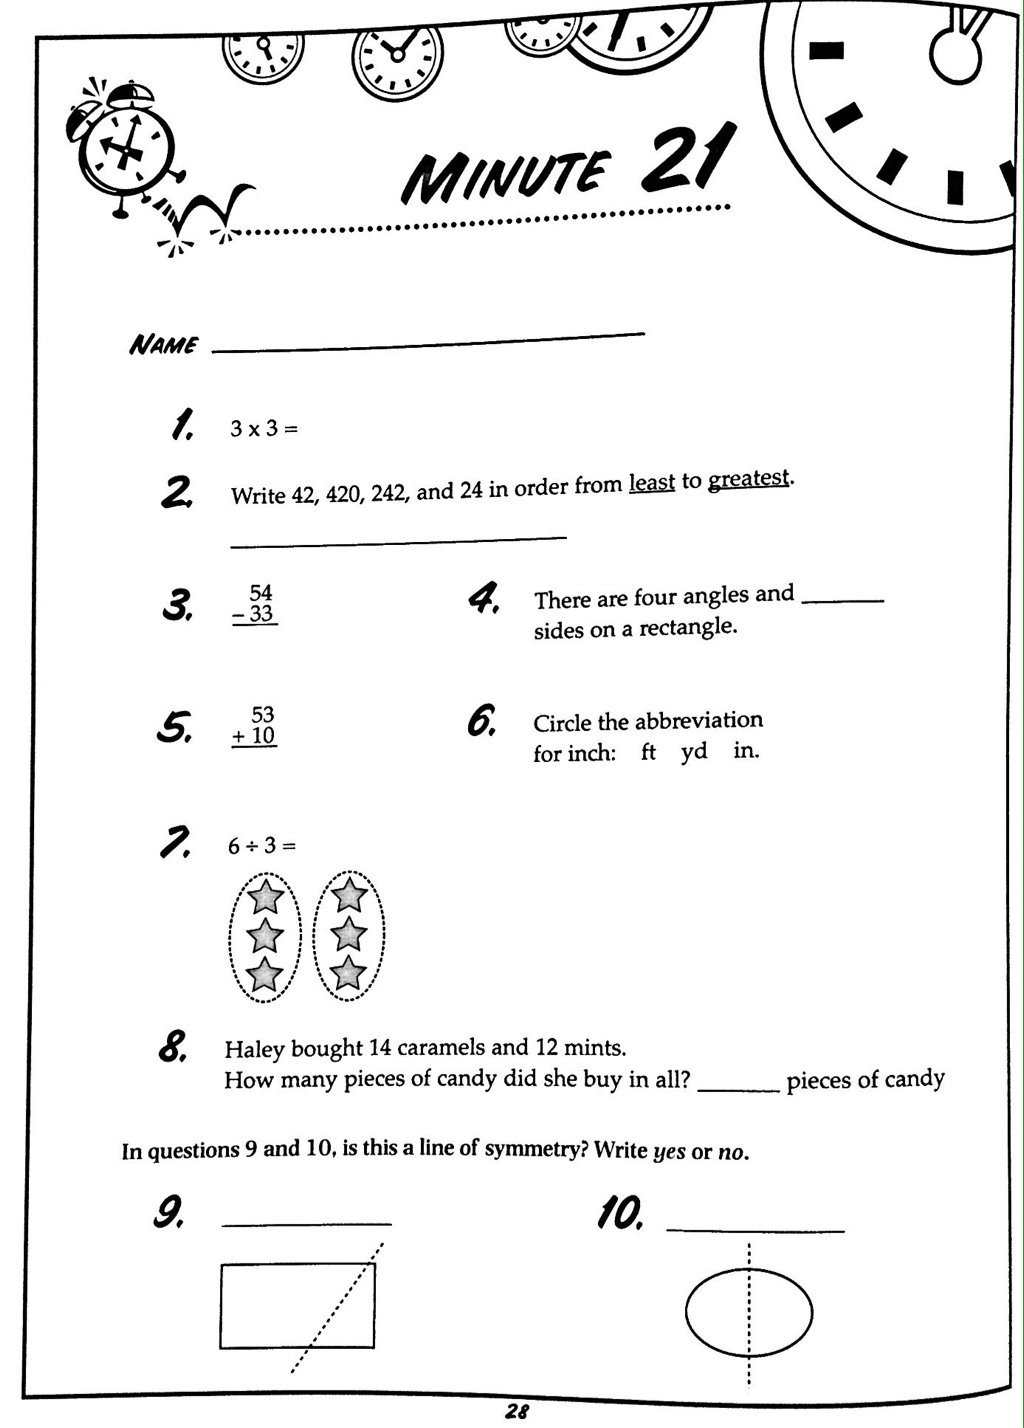 Math Minute Worksheet 8th Grade